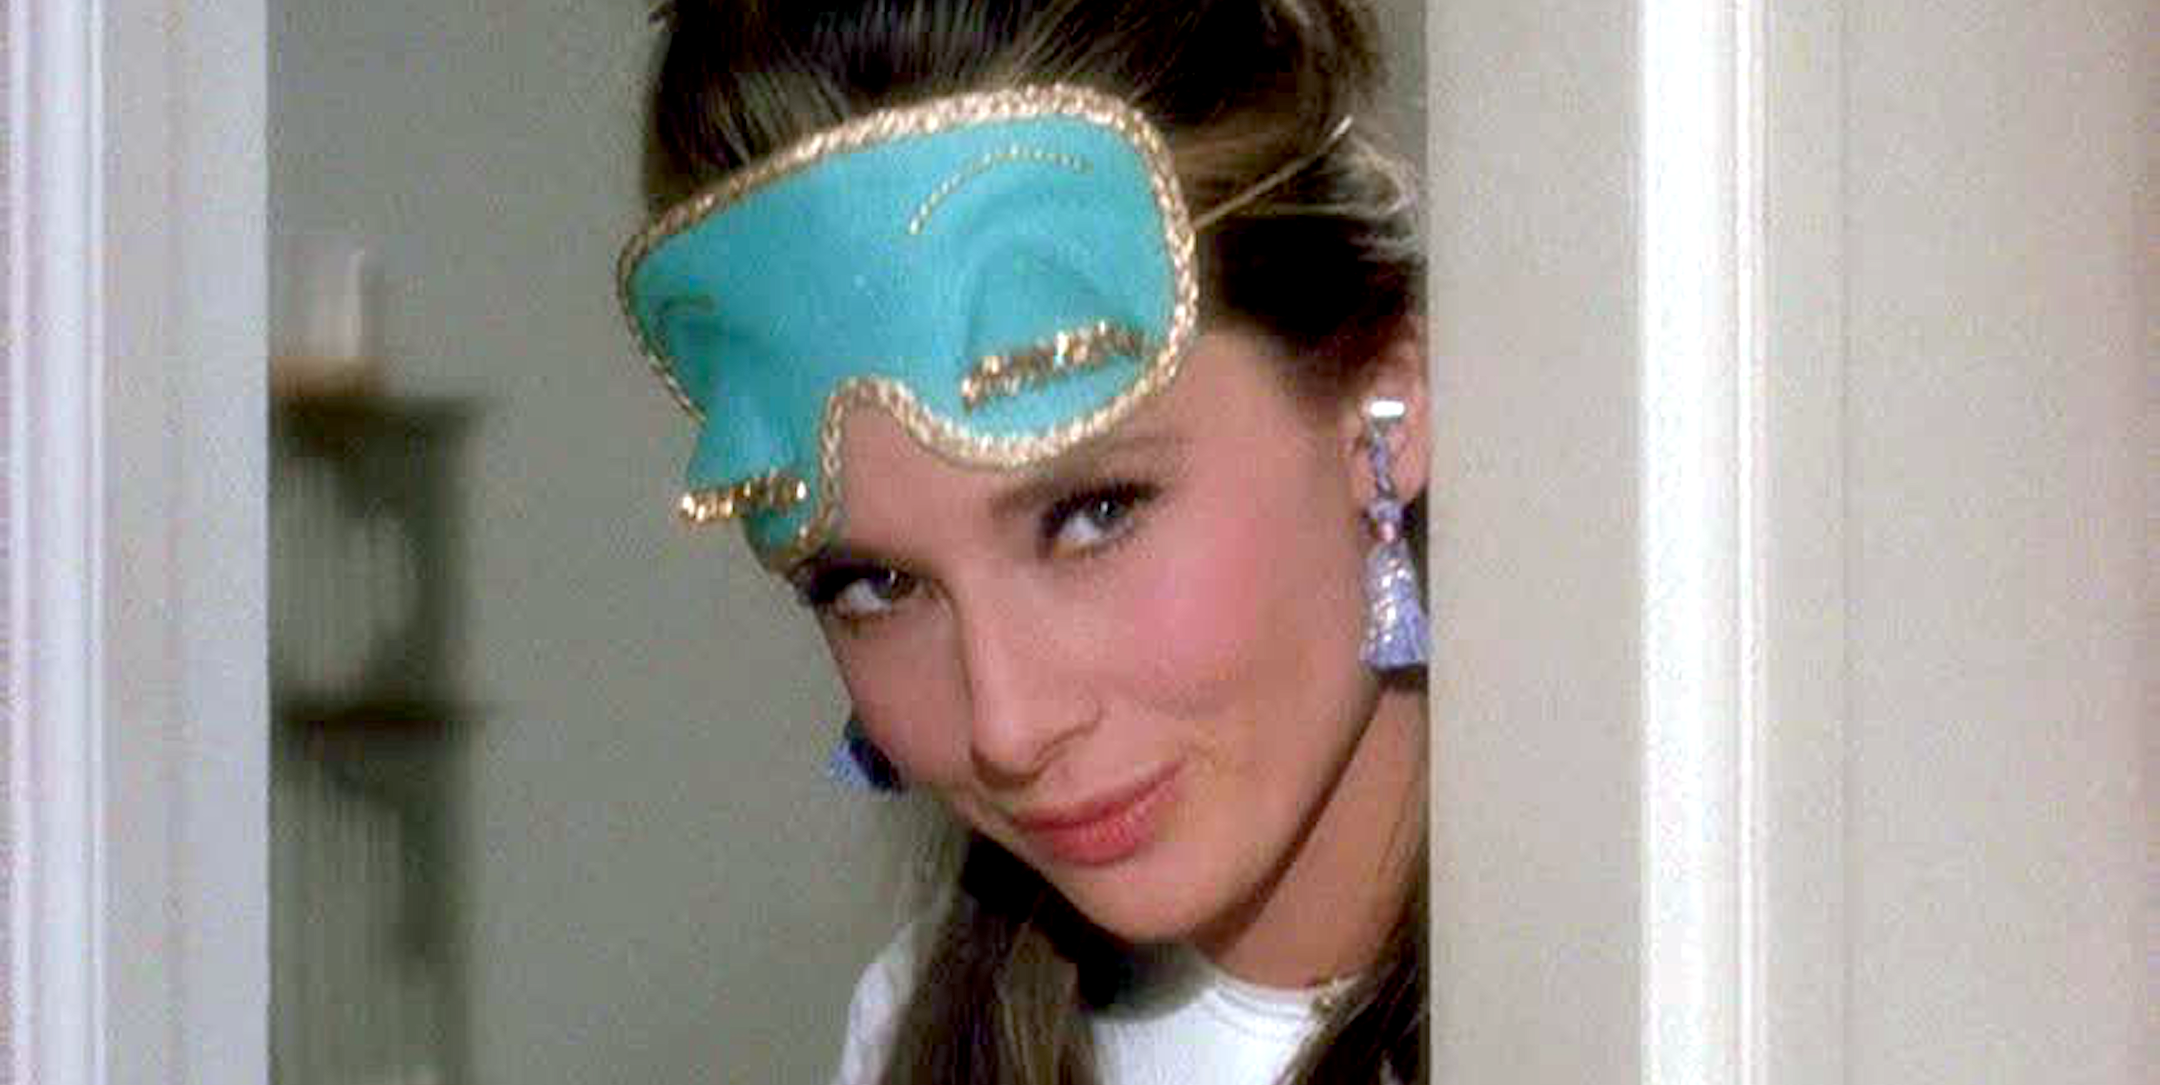 movies, breakfast at tiffany's, 1961, audrey hepburn, AMC